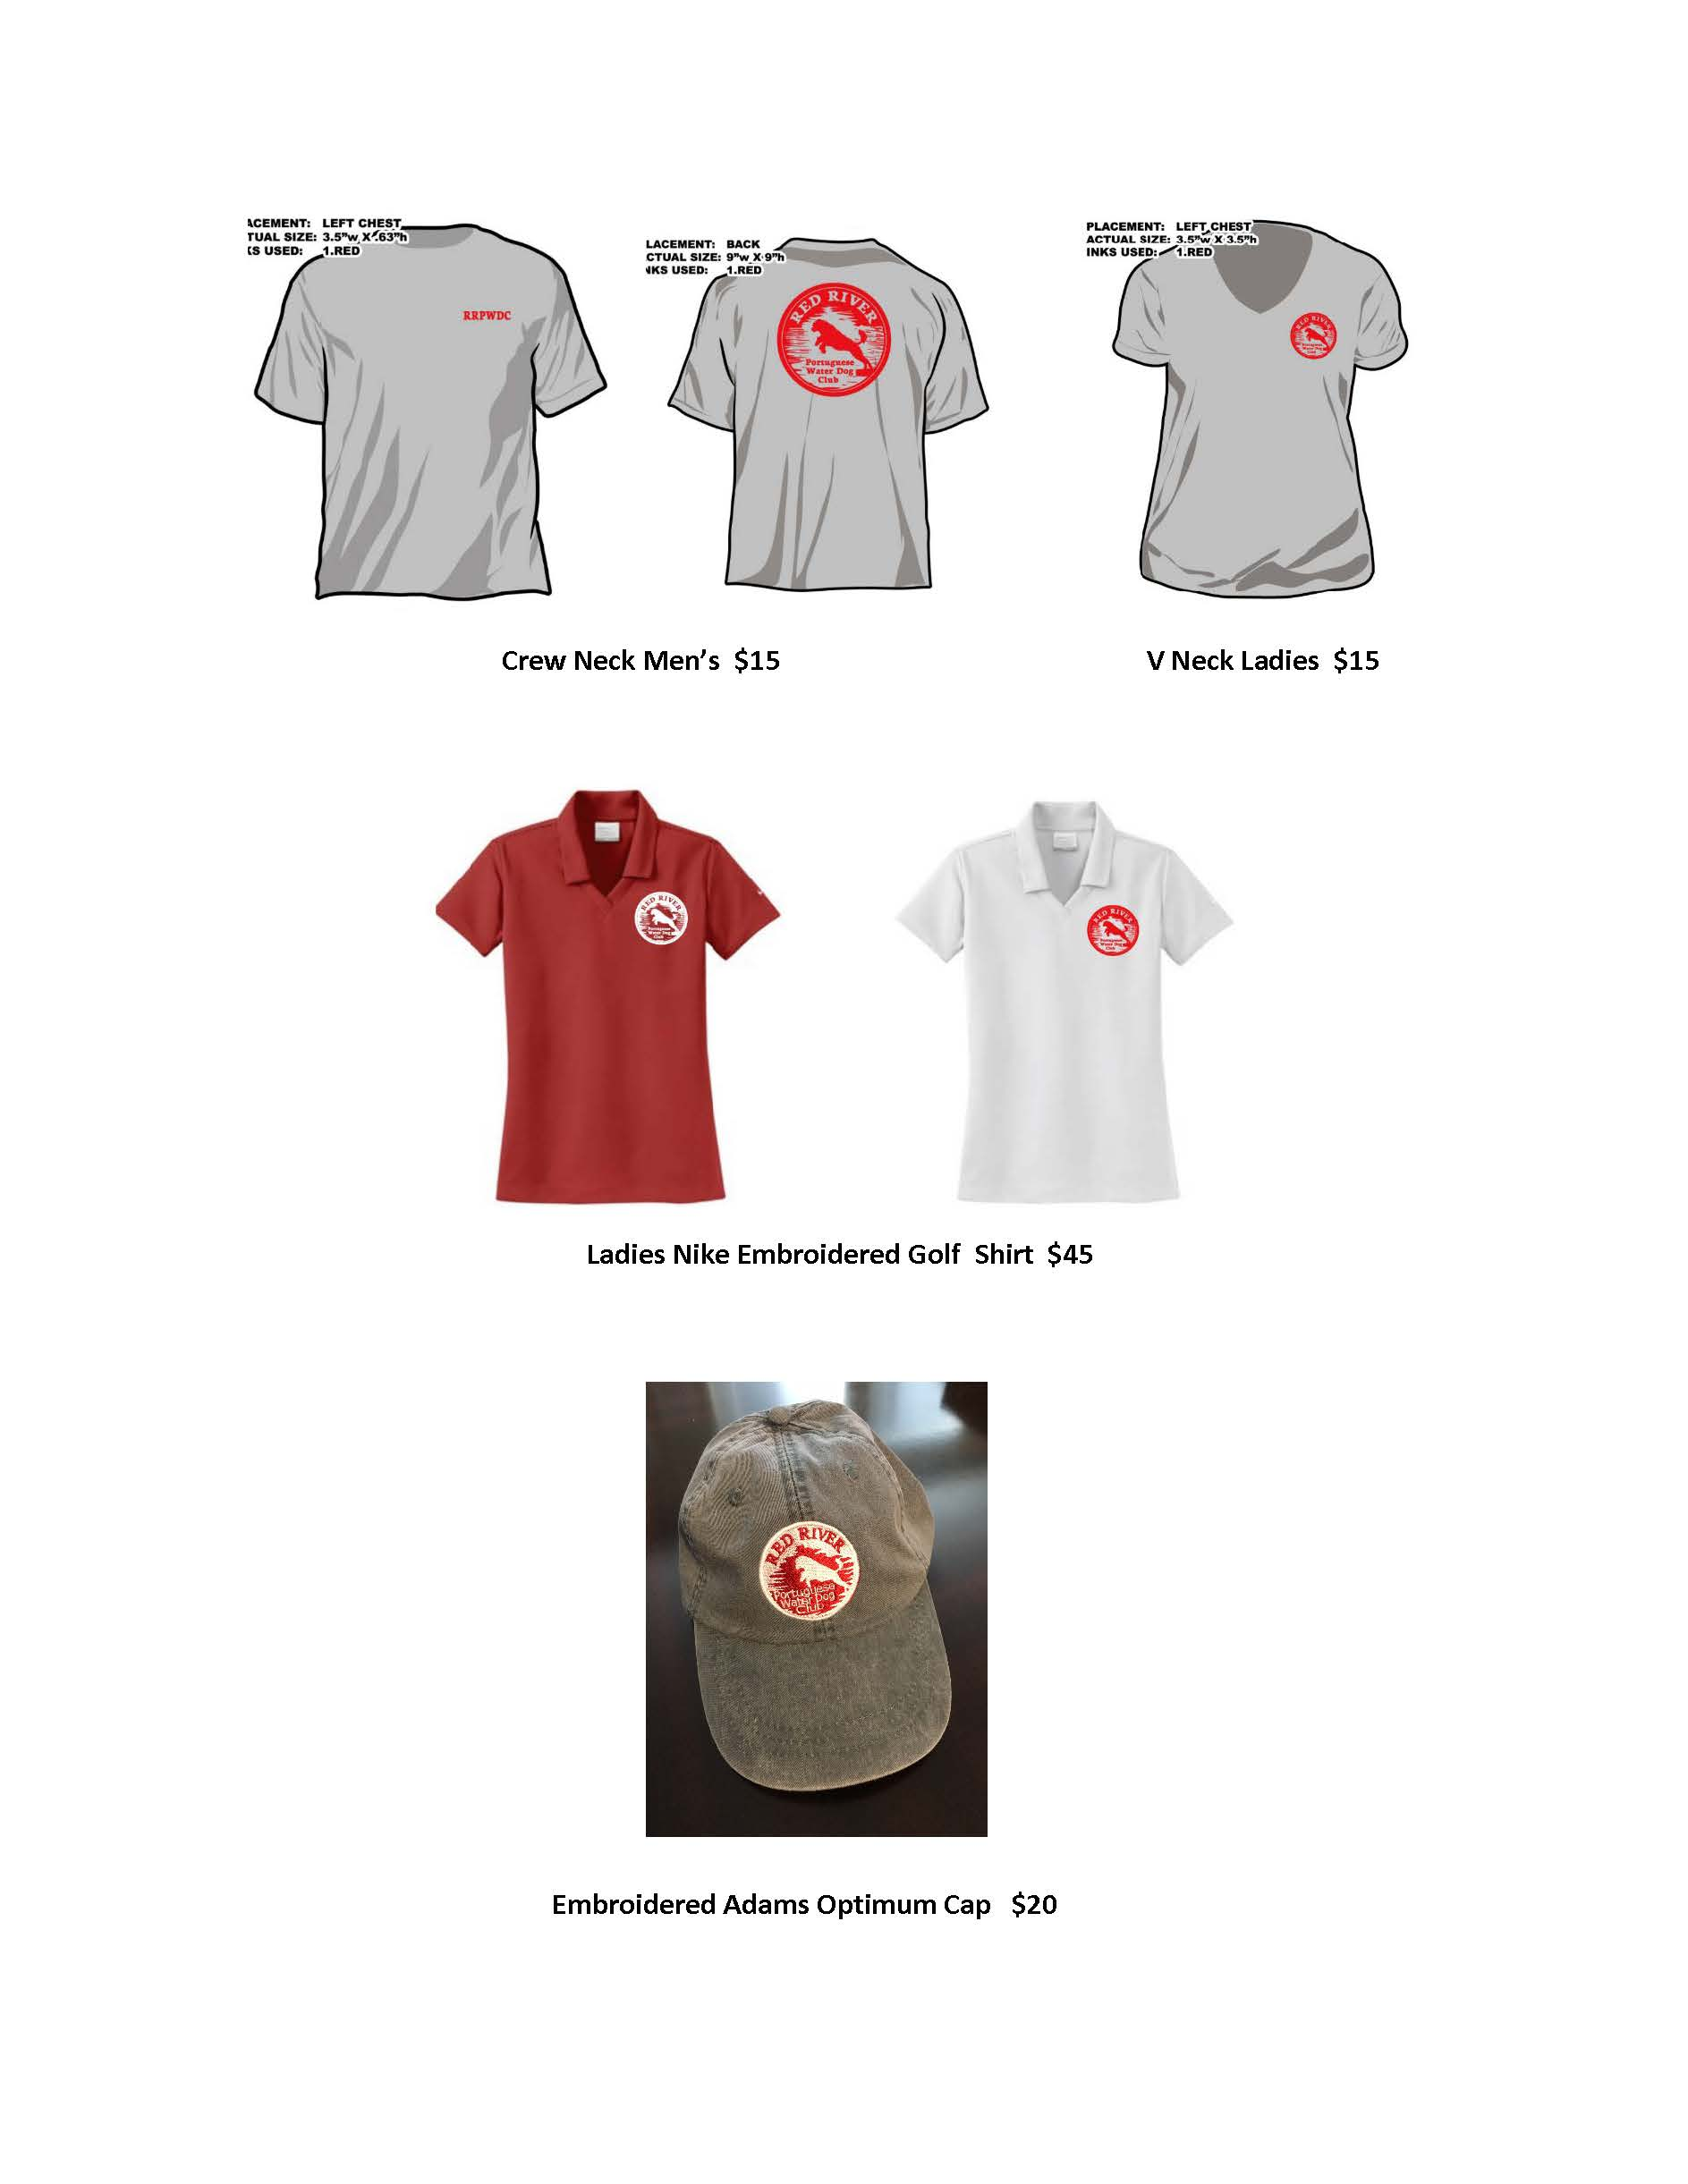 Red River PWDC Merchandise Details_Page_1.jpg